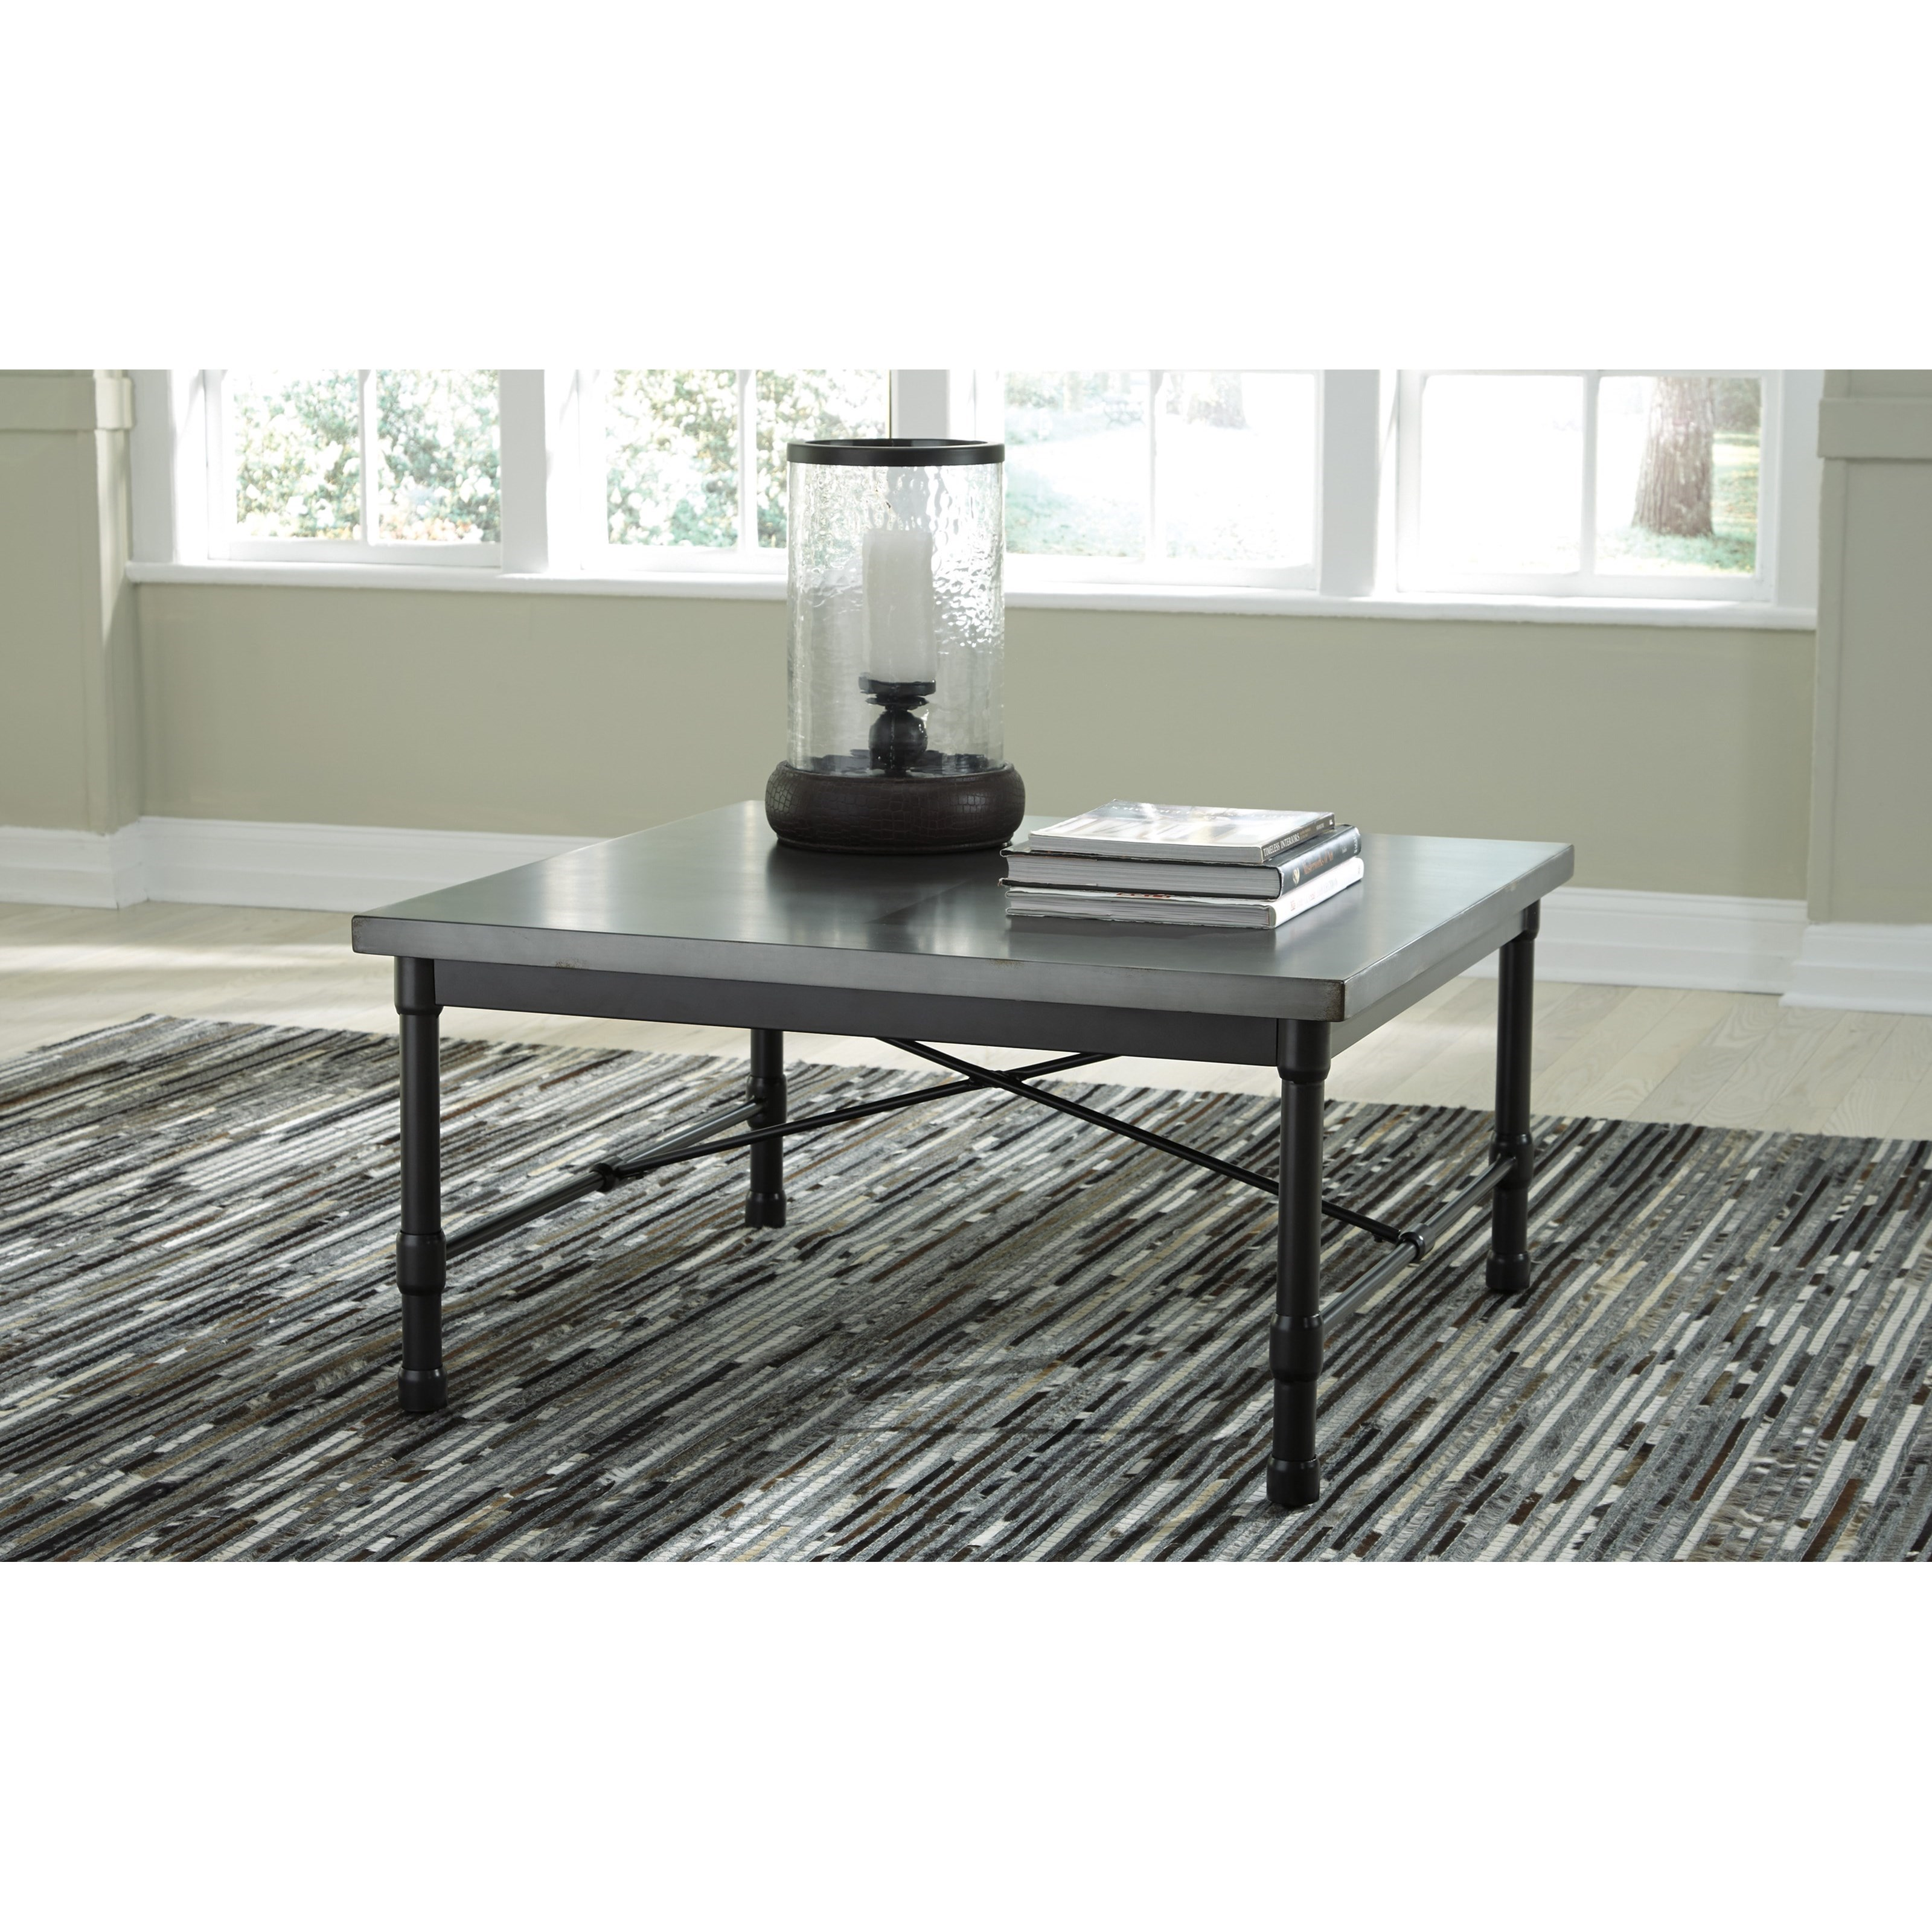 Signature design by ashley minnona industrial square for Coffee tables value city furniture